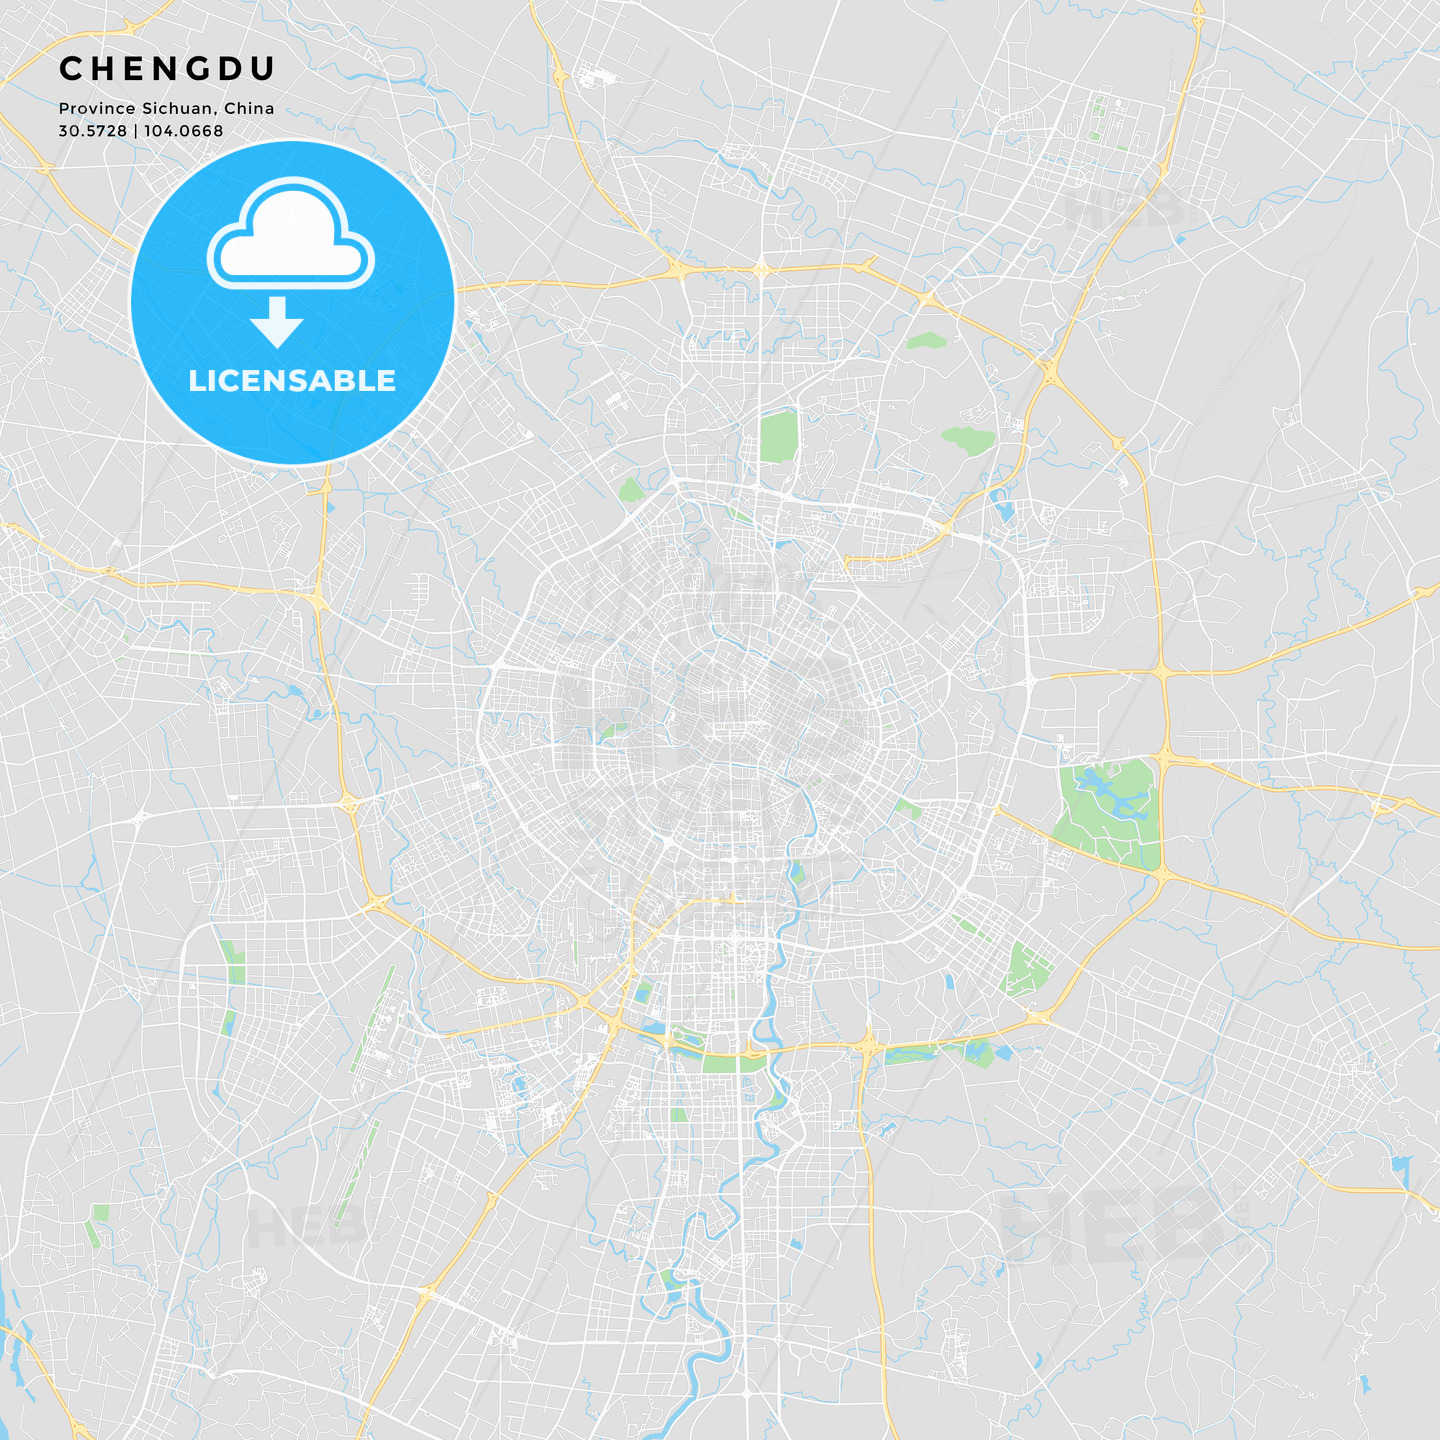 Printable street map of Chengdu, China   HEBSTREITS Sketches on